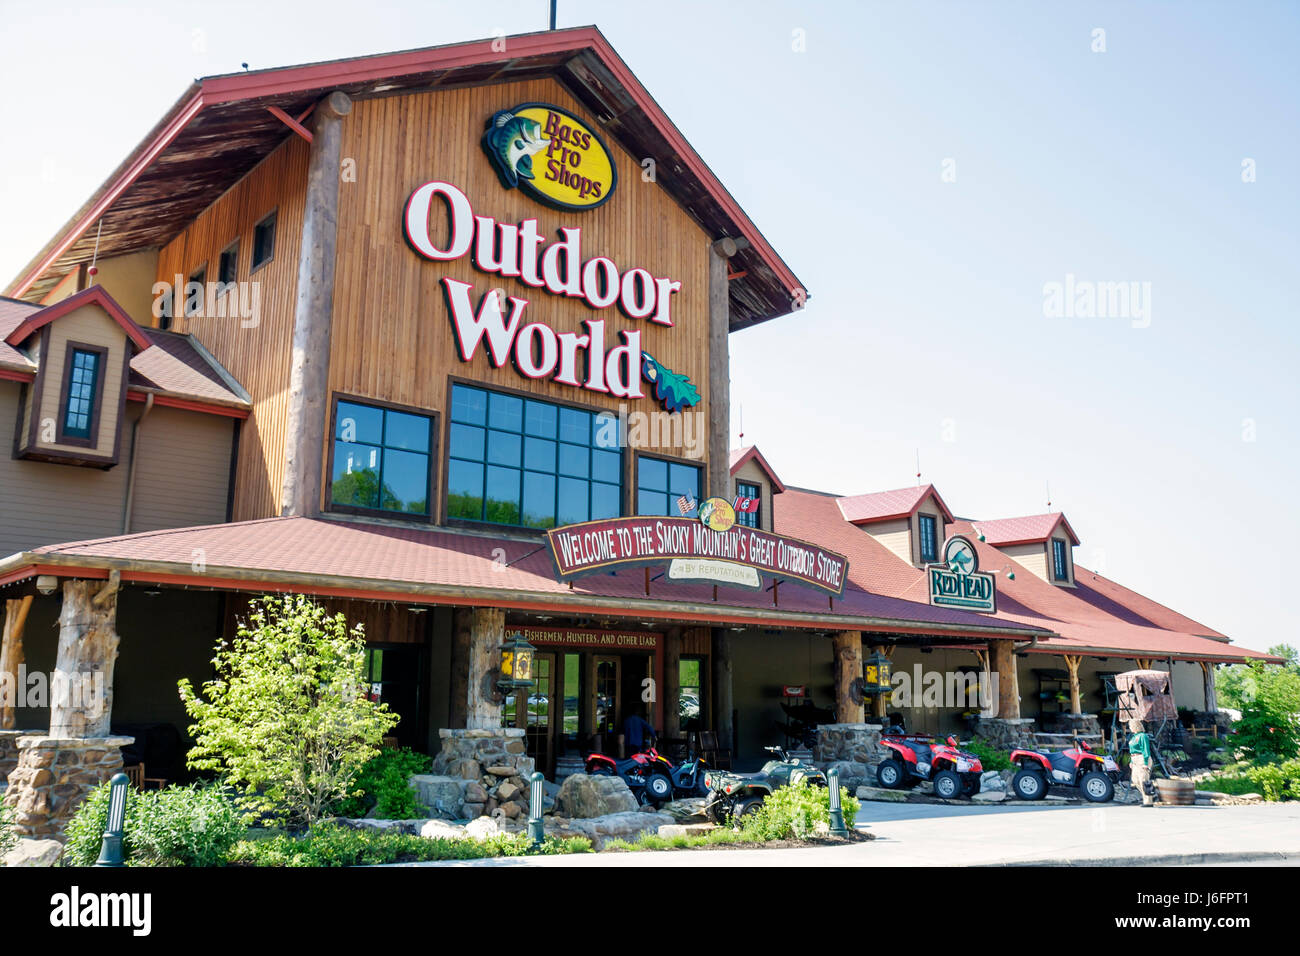 Tennessee Sevierville Kodak Bass Pro Shops sporting goods outdoor recreation retail chain exterior building name - Stock Image